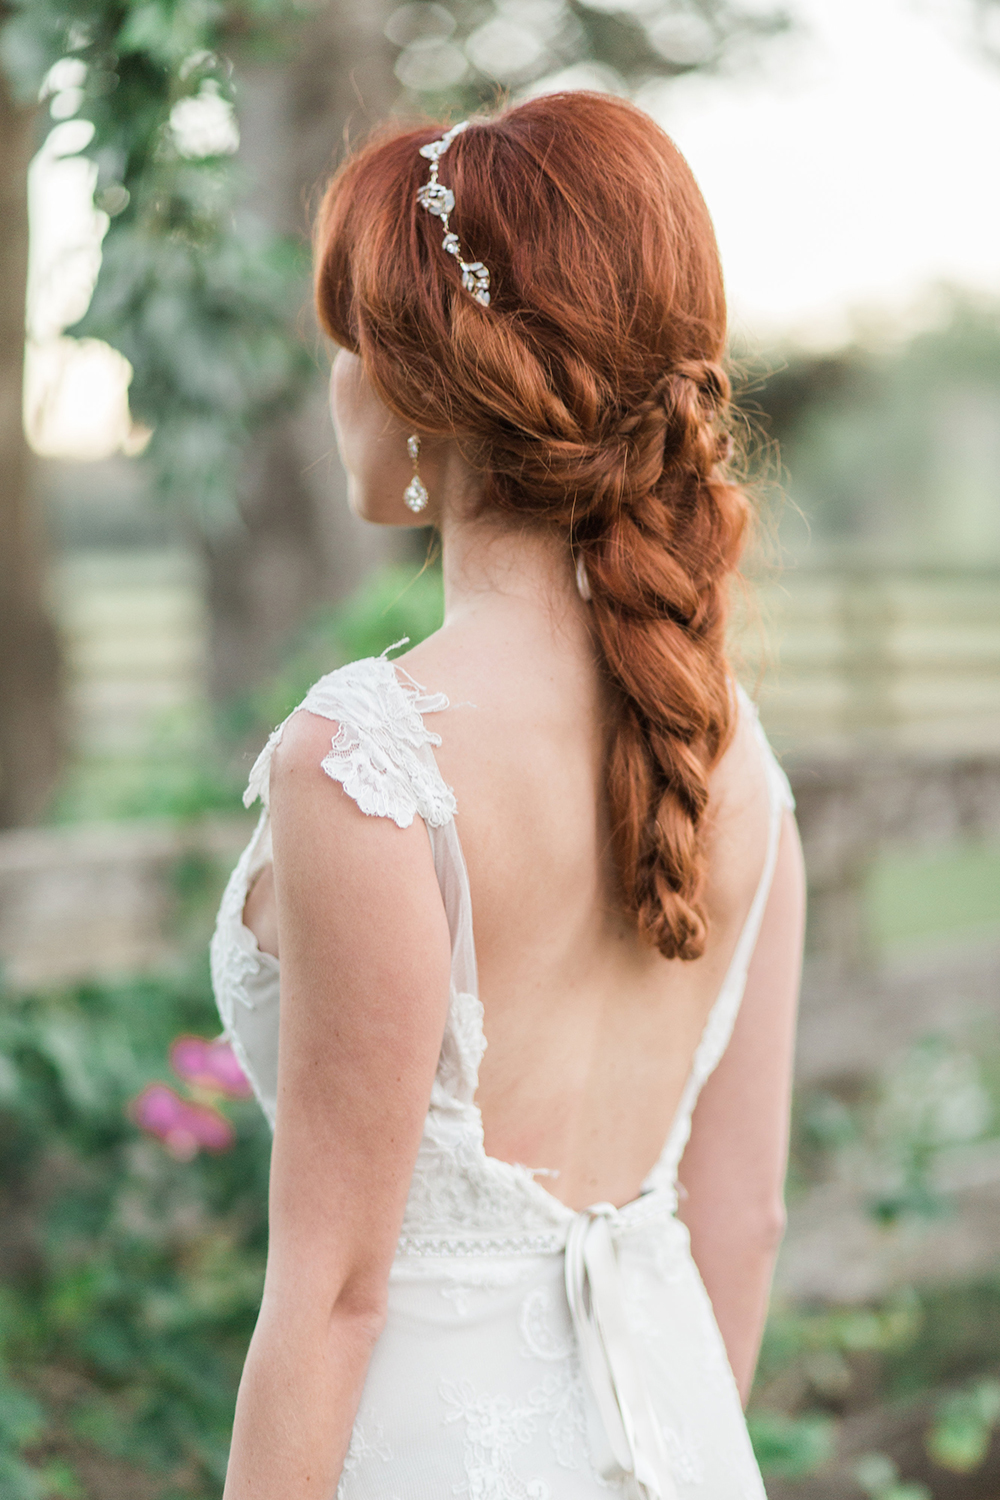 unique wedding hair braids - photo by Landon Hendrick Photography http://ruffledblog.com/southern-garden-chic-wedding-inspiration